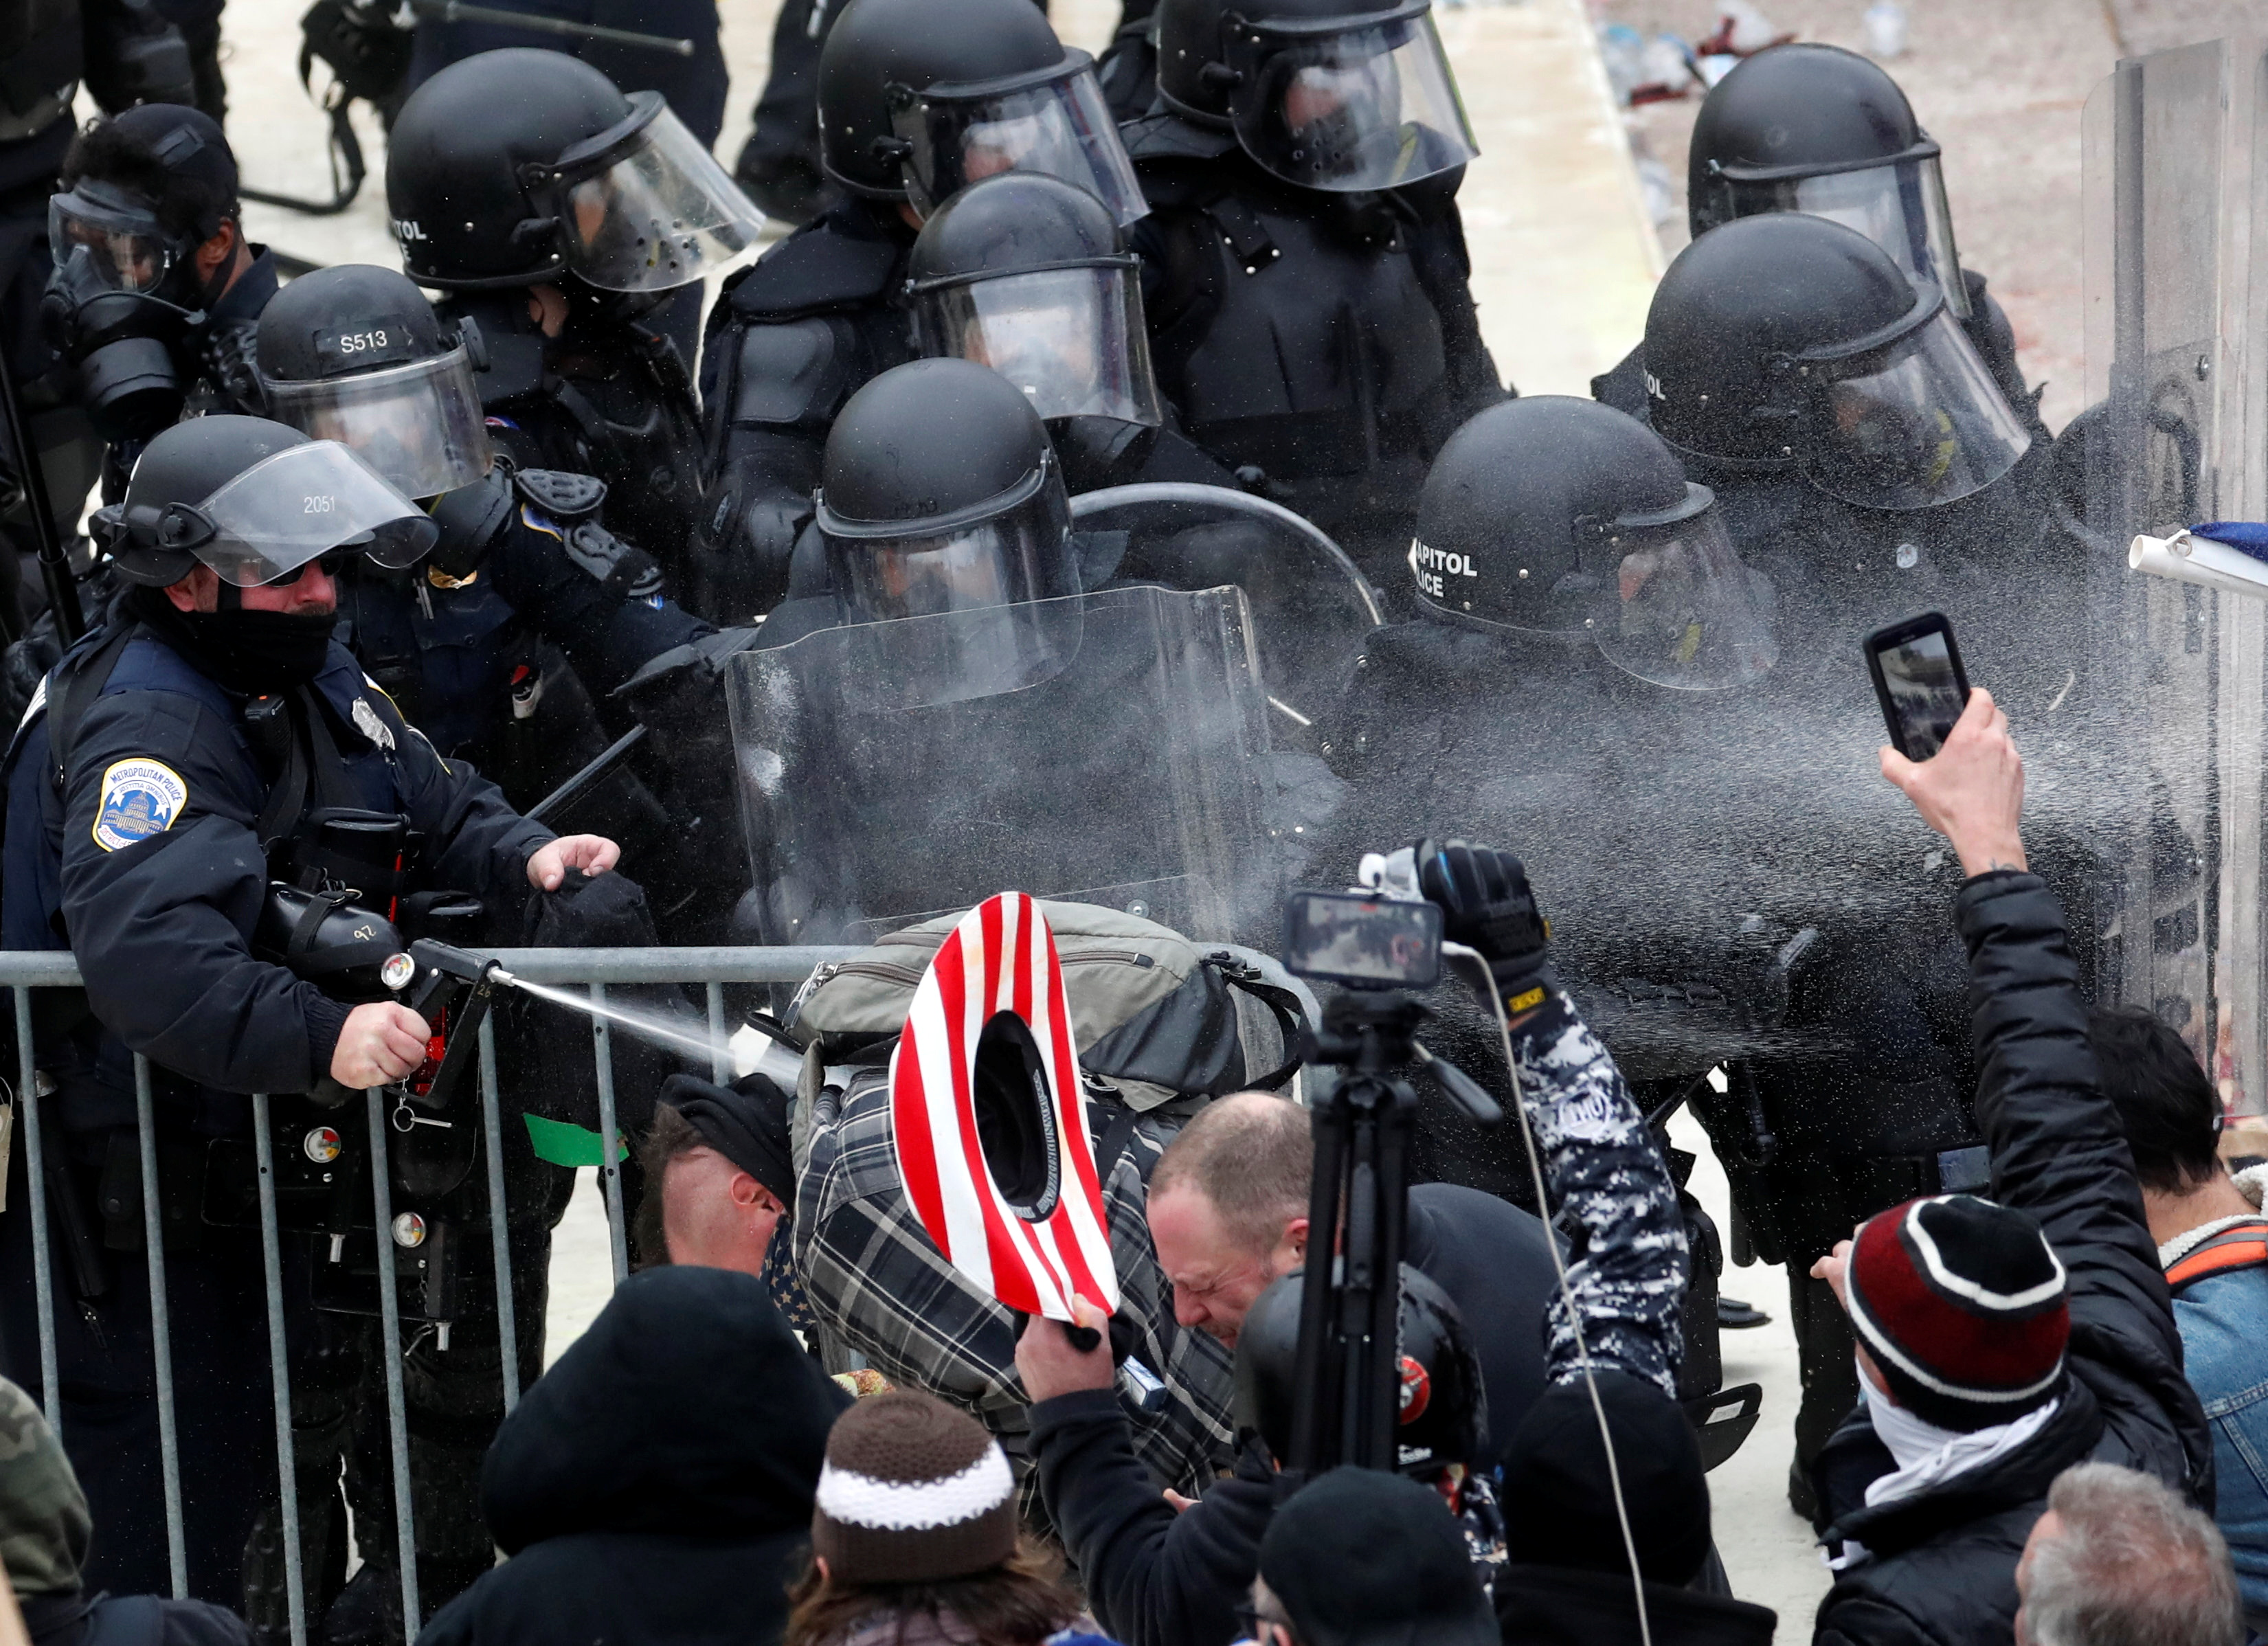 Police officers release pepper spray on pro-Trump protesters during clashes with Capitol police at a rally to contest the certification of the 2020 U.S. presidential election results by the U.S. Congress, at the U.S. Capitol Building in Washington, U.S, January 6, 2021. REUTERS/Shannon Stapleton